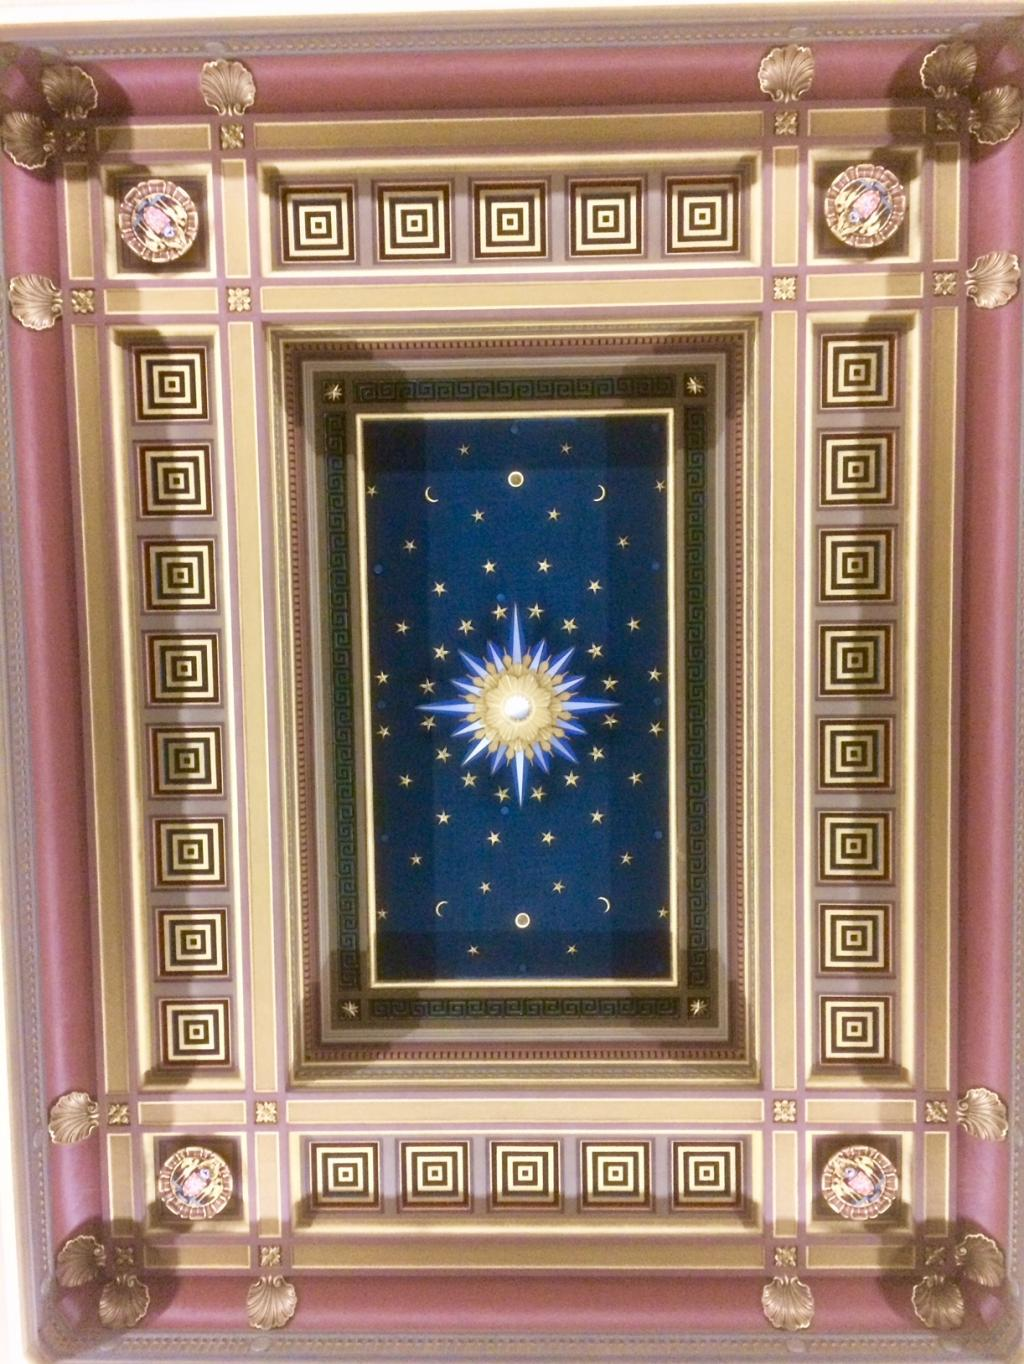 UGLE Starred Ceiling 1